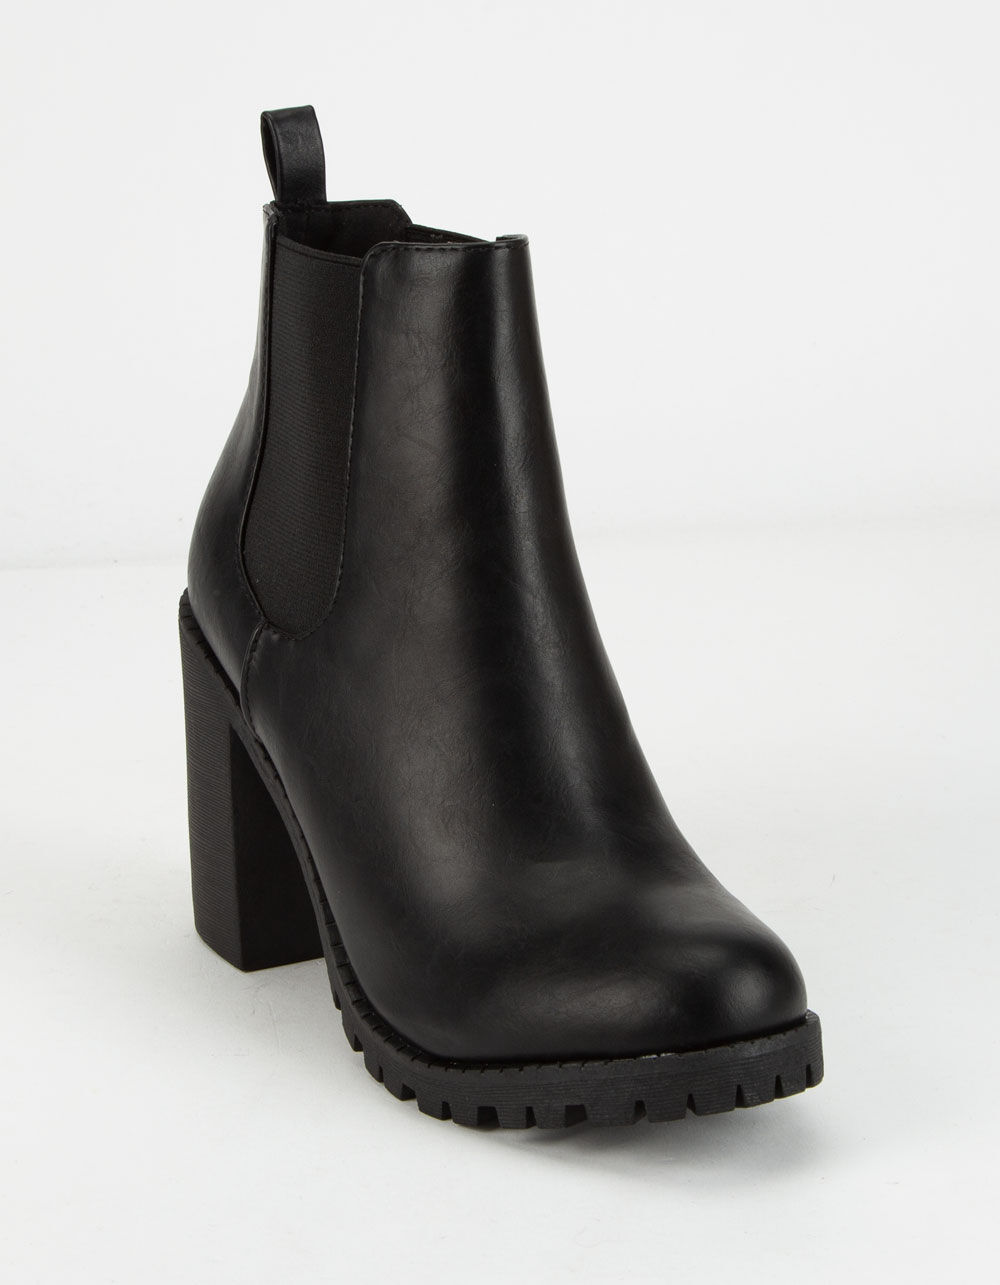 SODA Lug Sole Double Gore Ankle Boots